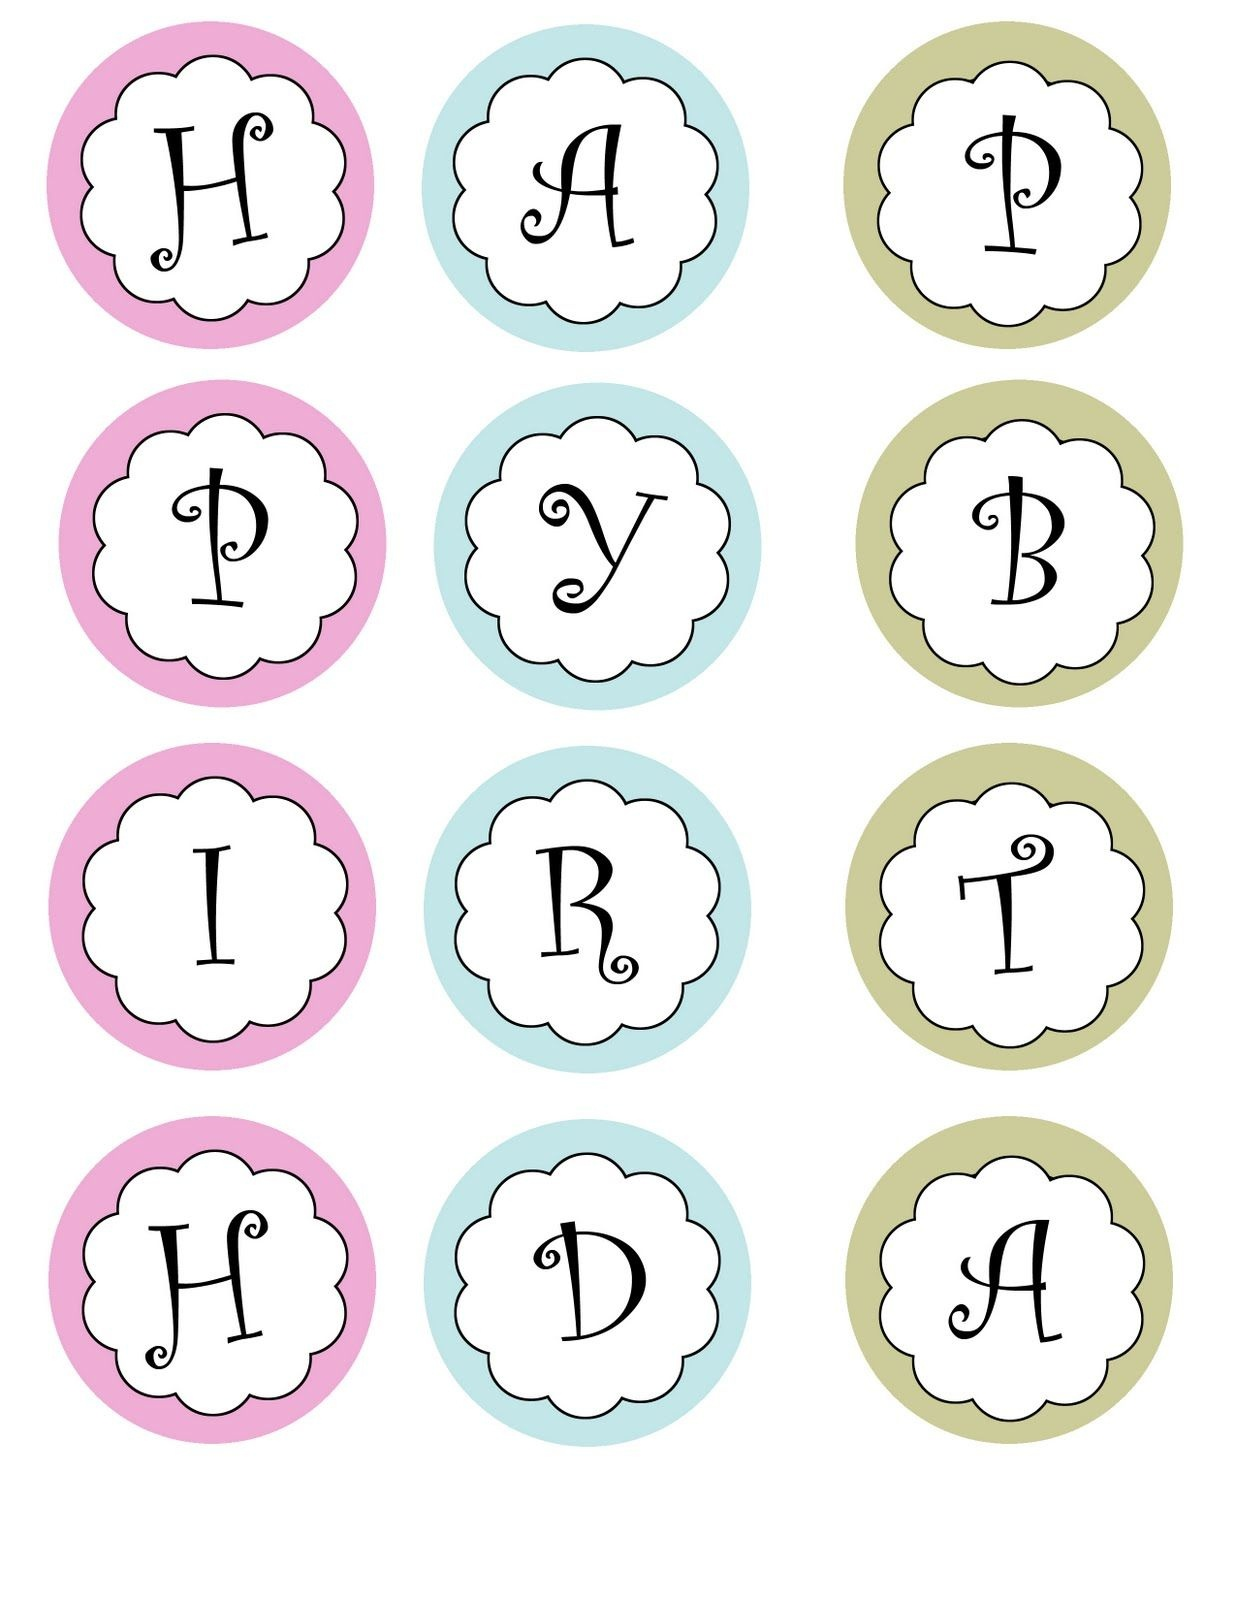 Printable Banners Templates Free | Print Your Own Birthday Banner - Printable Banner Letters Template Free